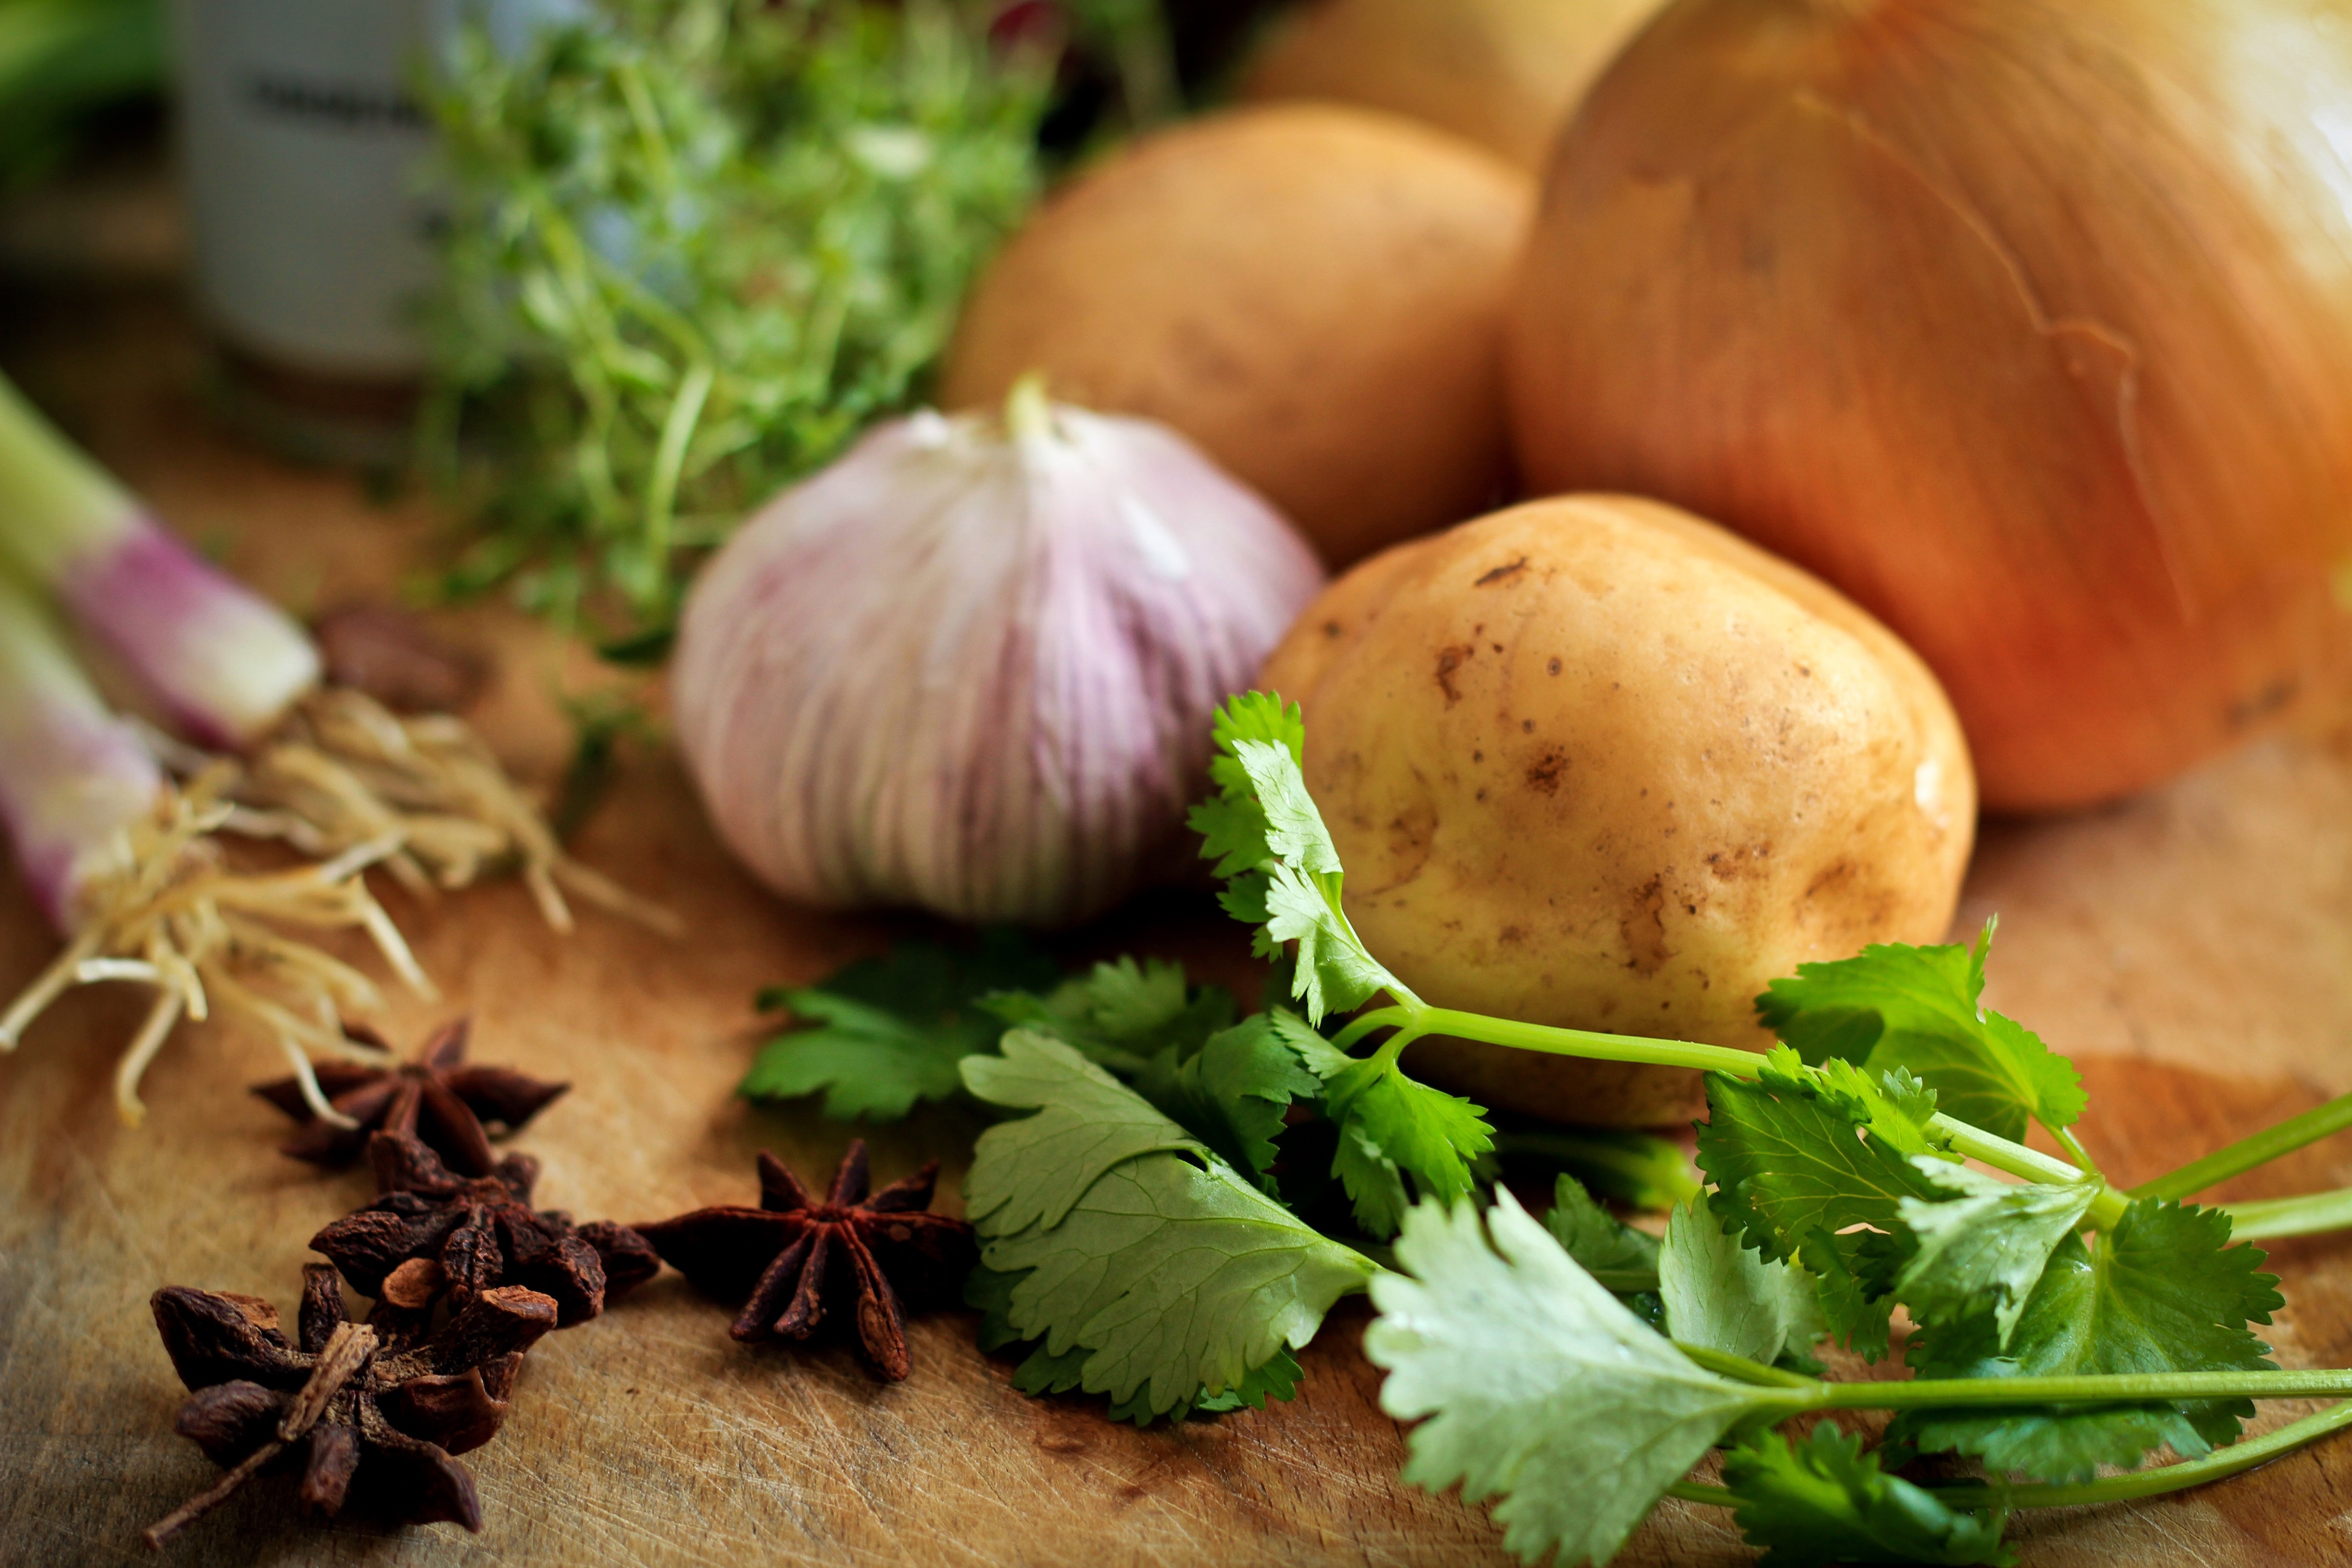 Paleo or Plant-Based? 6 Reasons They are More Similar than You Might Think